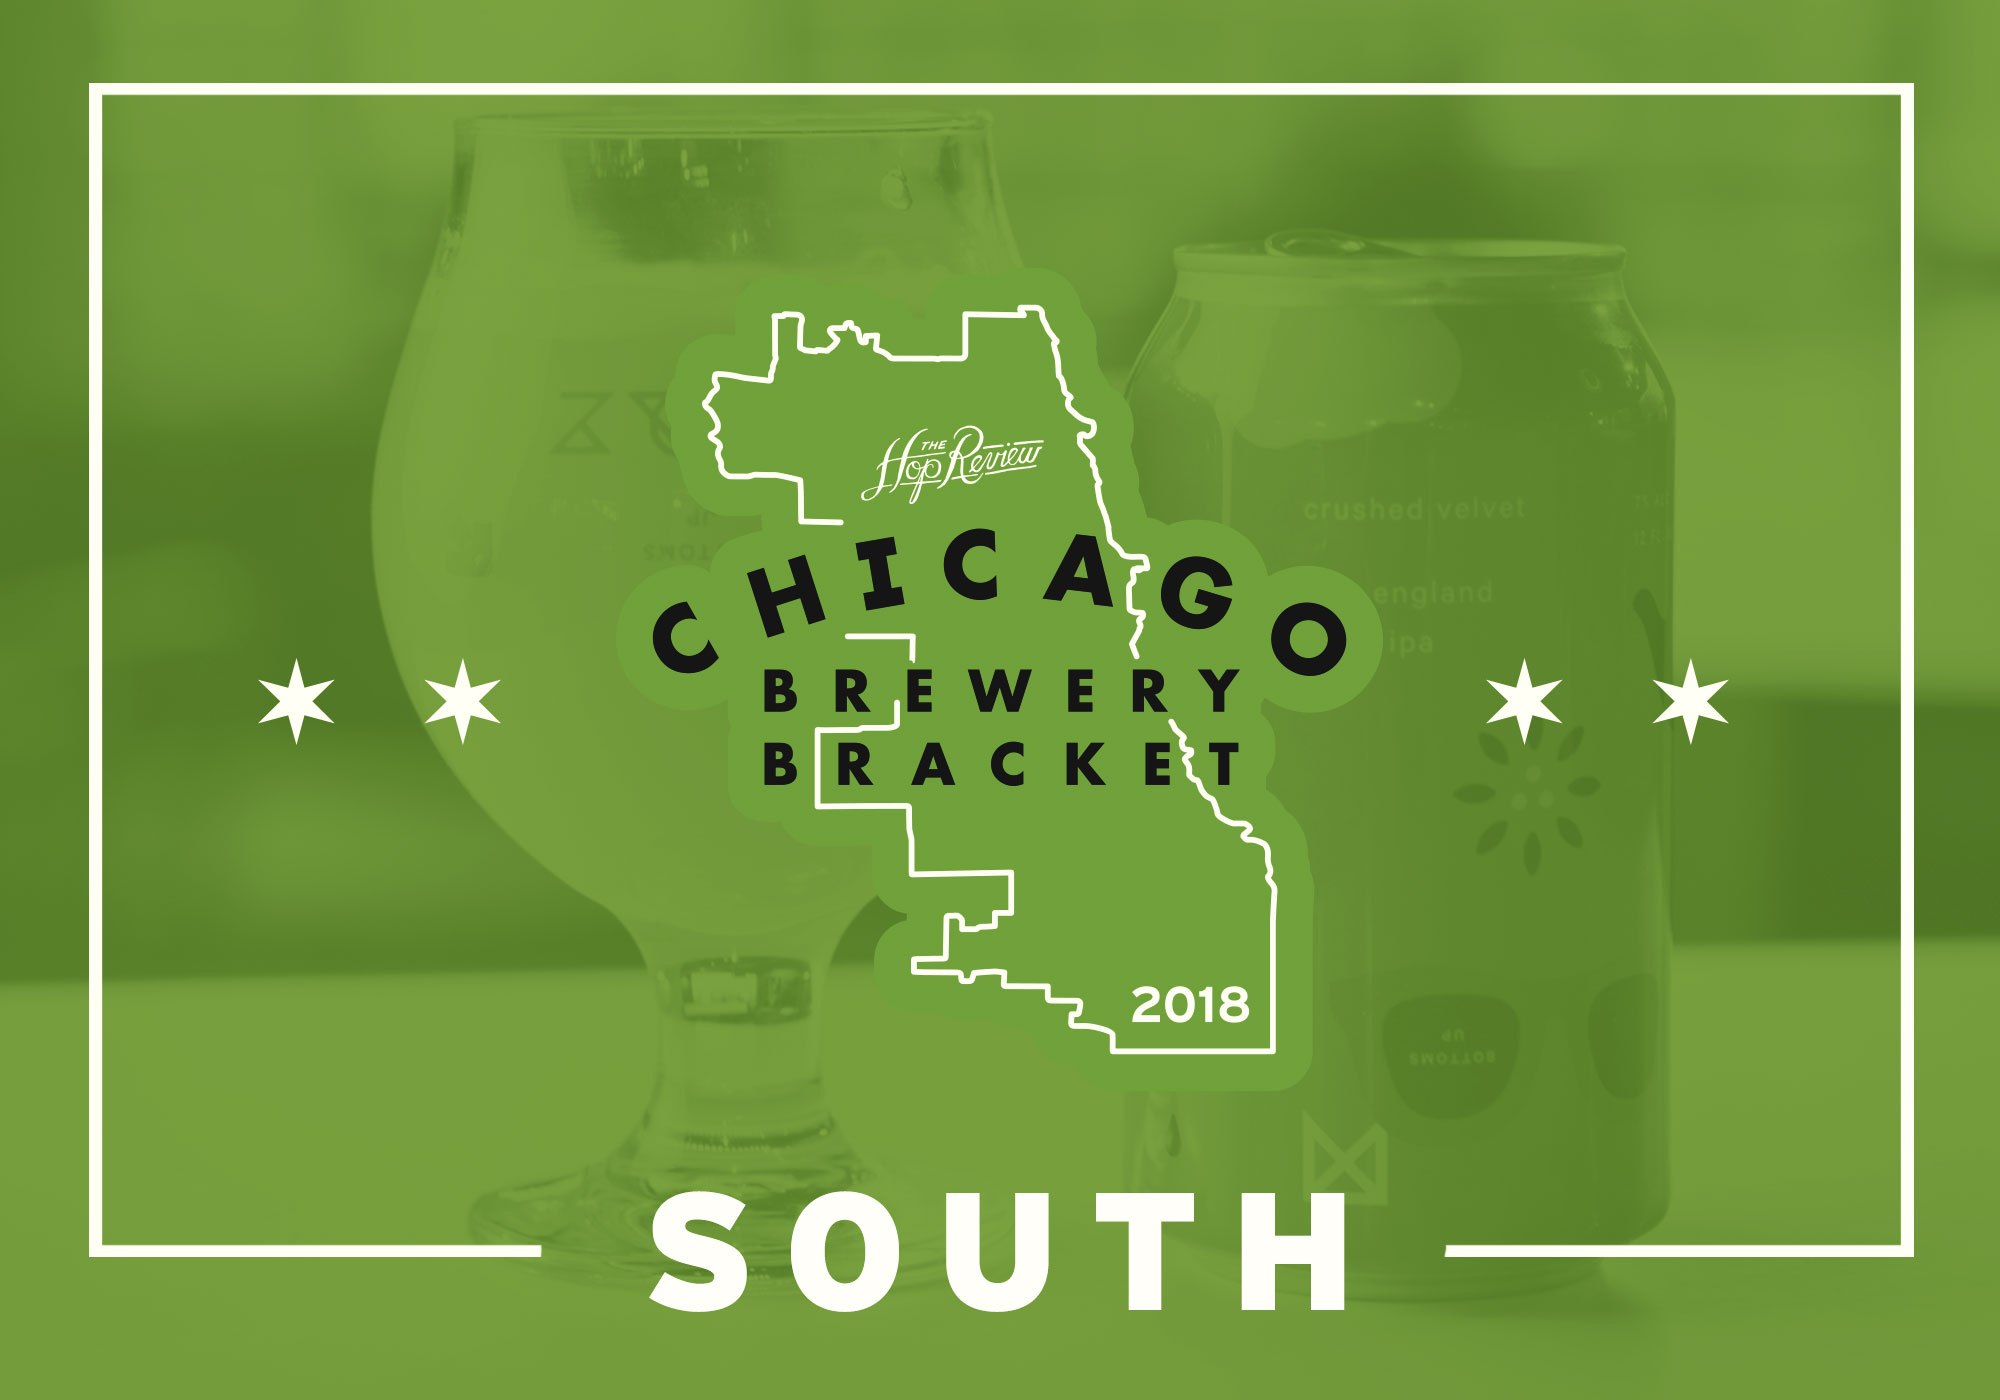 ChicagoBreweryBracket_2018_SOUTH.jpg